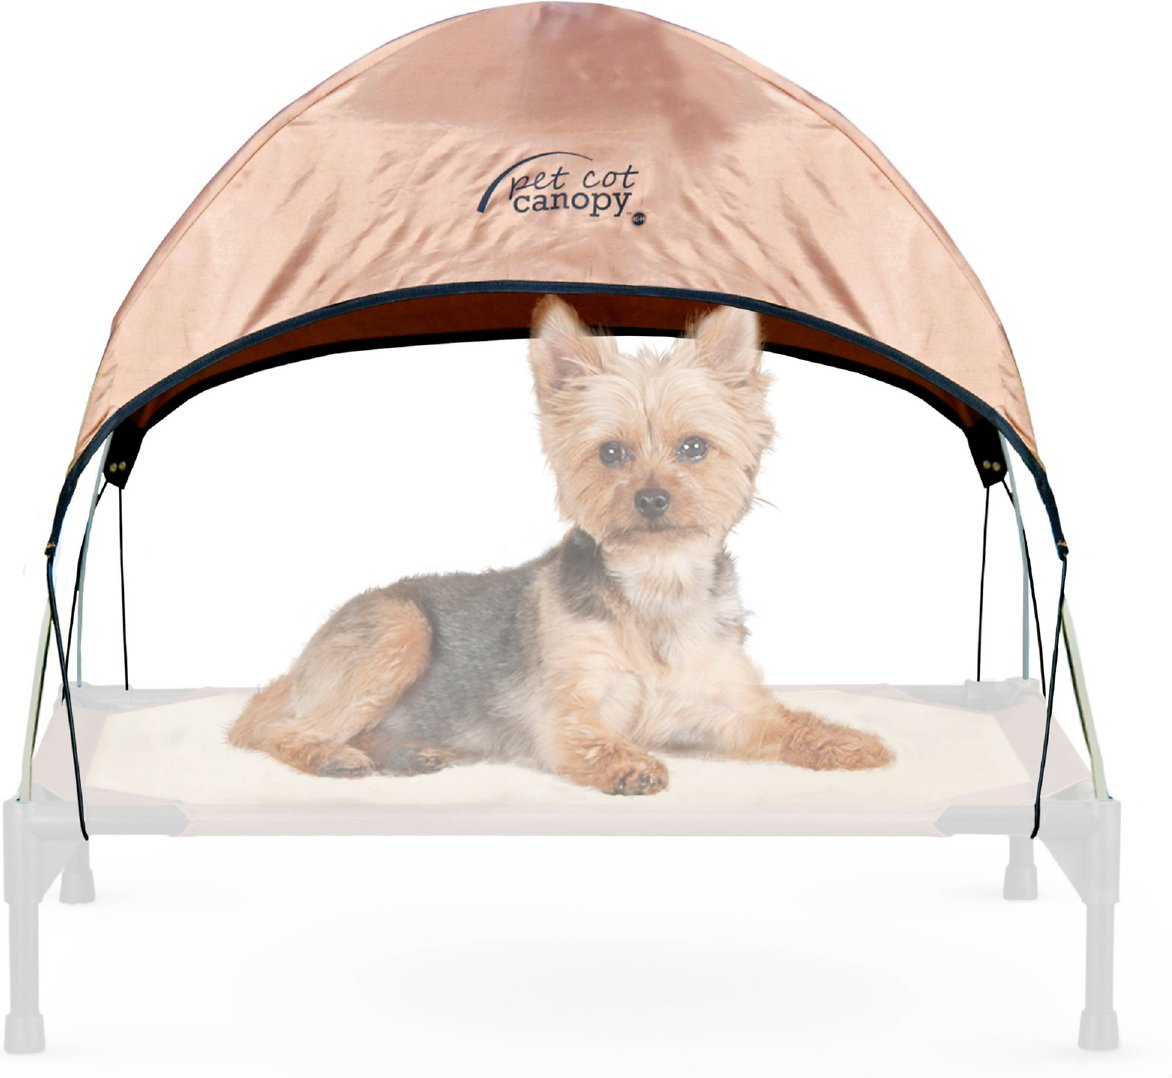 KandH Manufacturing 30 by 42-Inch Pet Cot Canopy New Large Free Shippi Gray